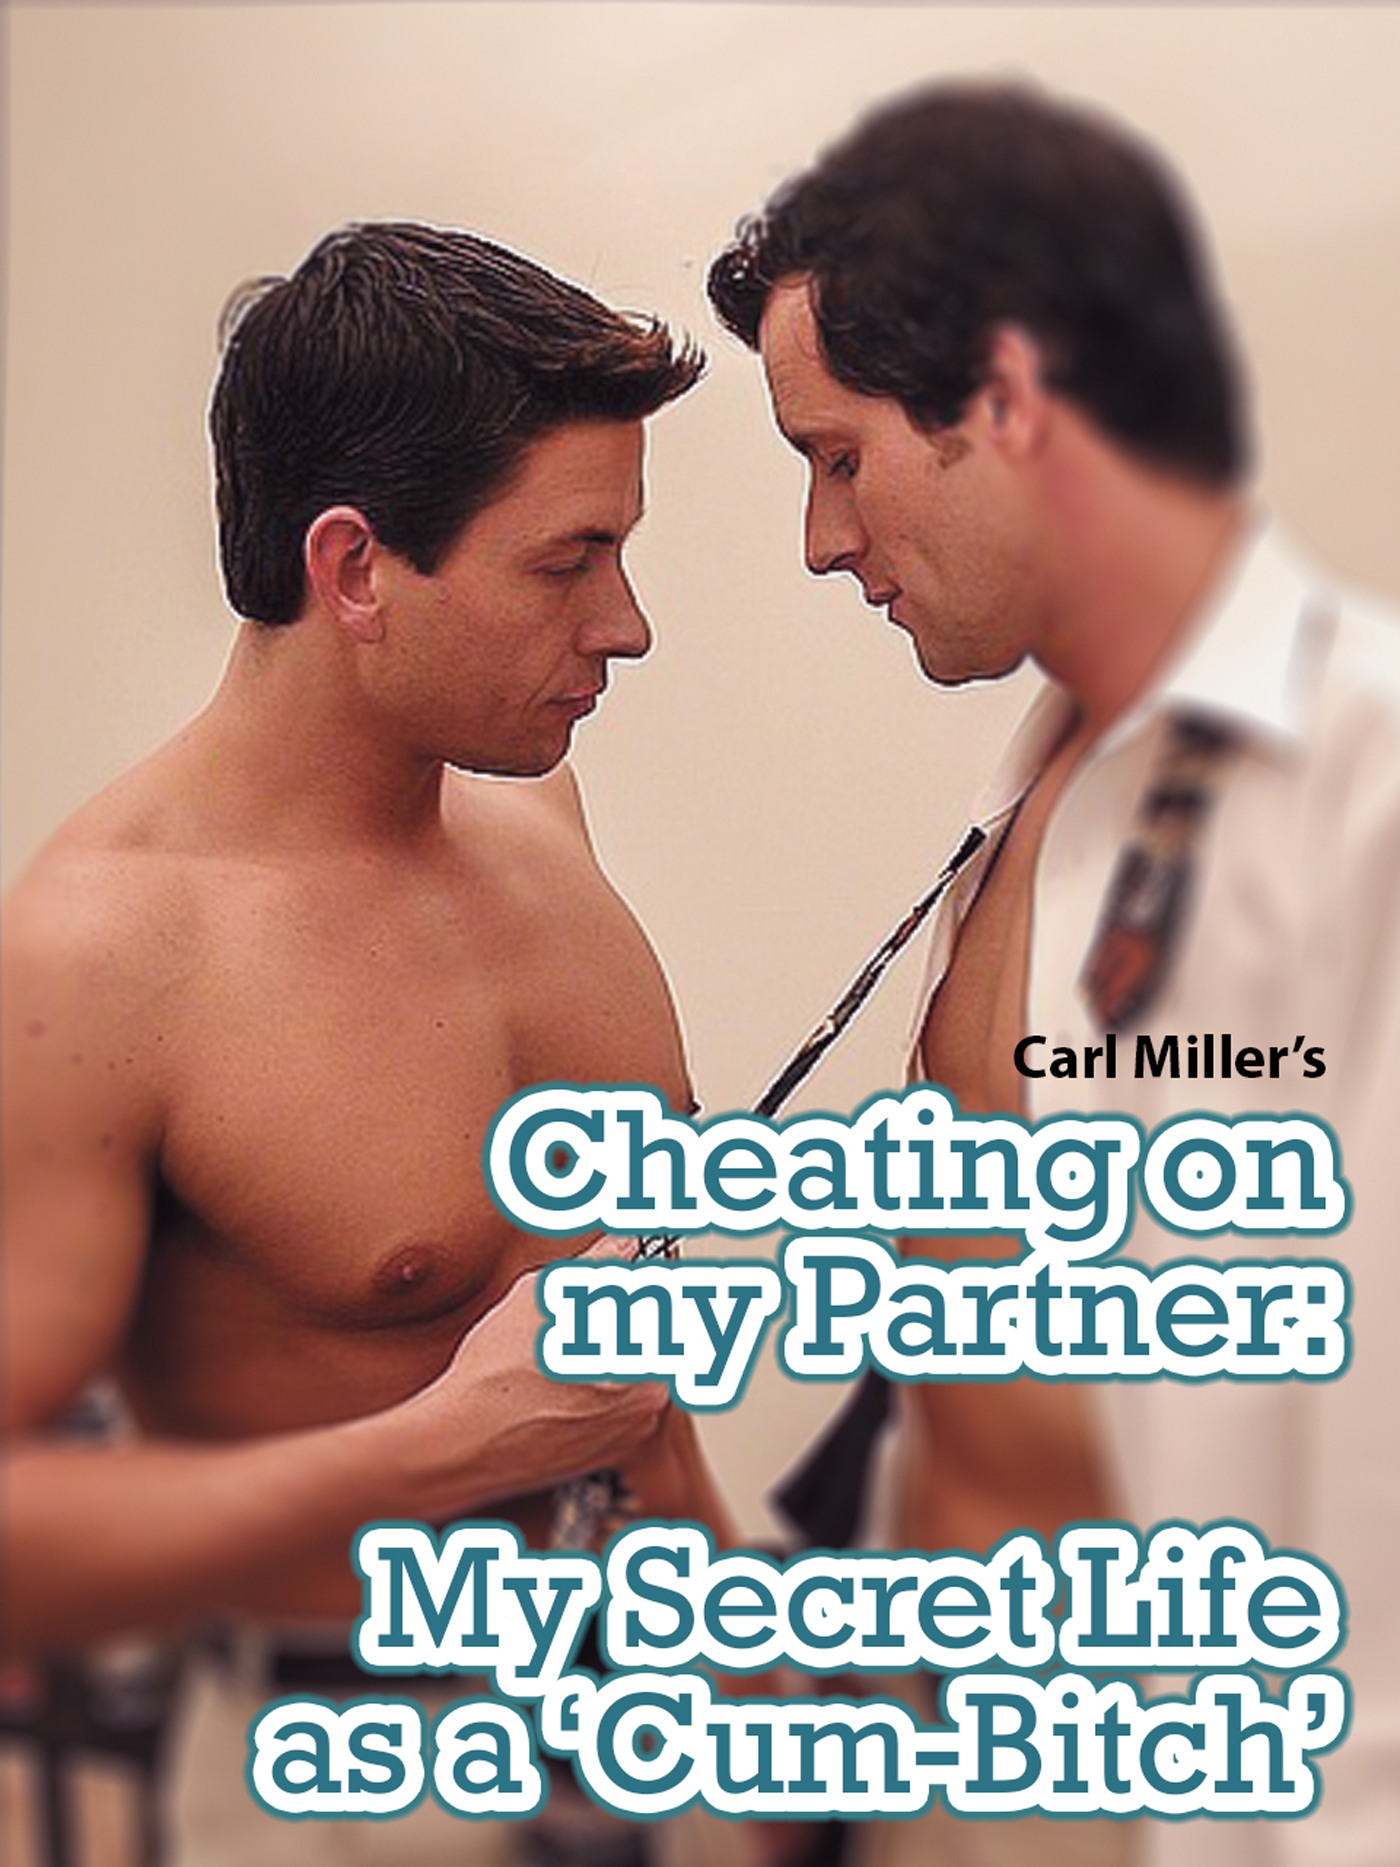 Carl Miller - Cheating on my Partner: My Secret Life as a 'Cum-Bitch'